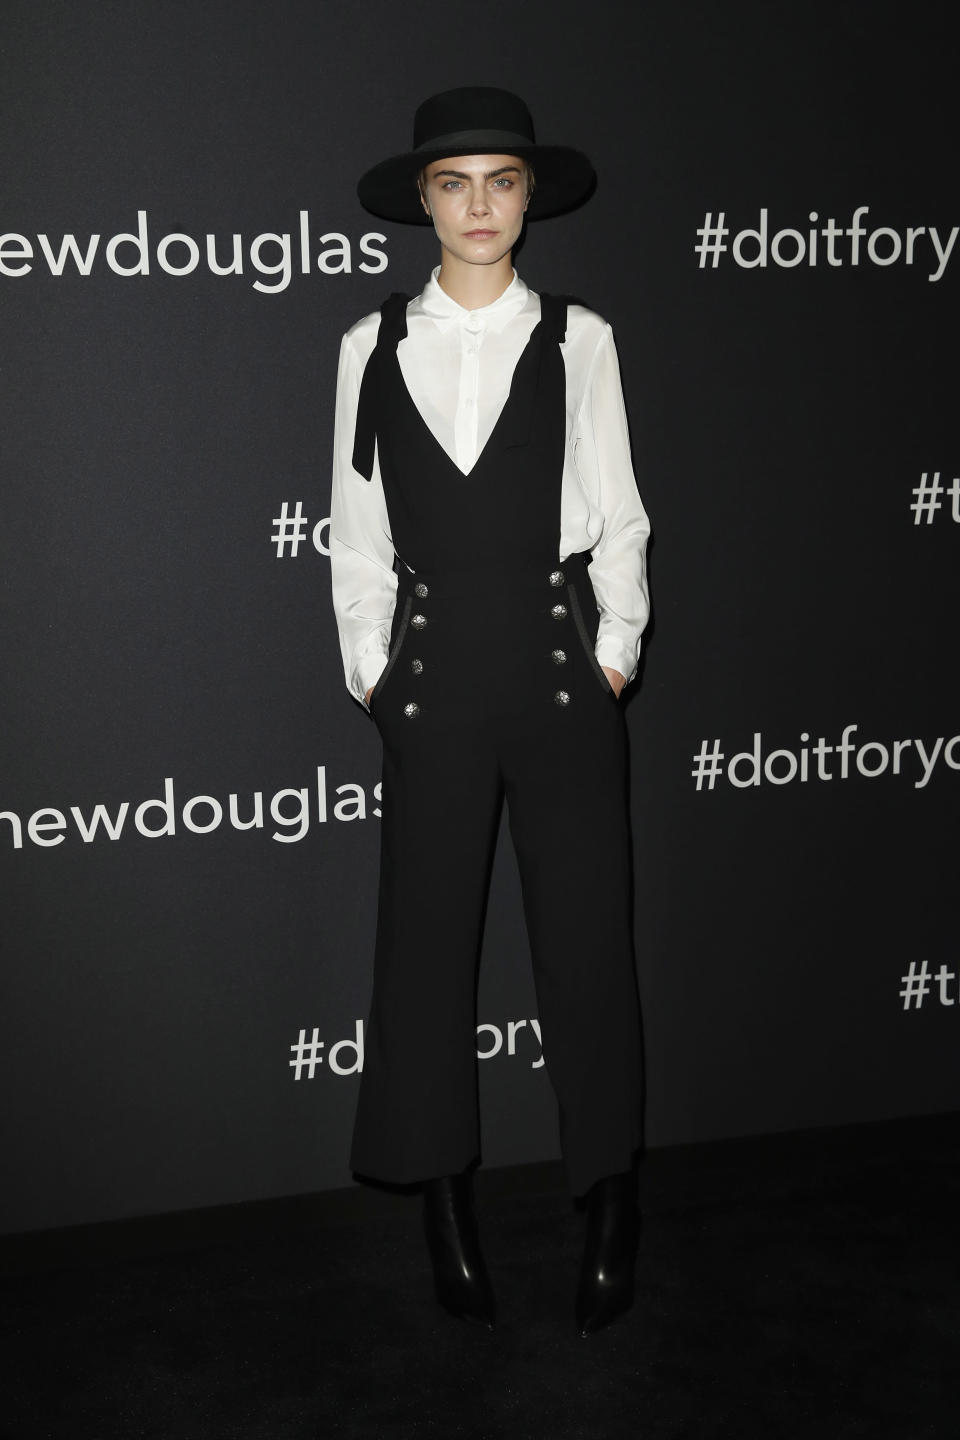 <p>On May 30, Cara Delevigne attended the Douglas X Peter Lindbergh campaign launch in Berlin wearing a black jumpsuit and co-ordinating hat. <em>[Photo: Getty]</em> </p>